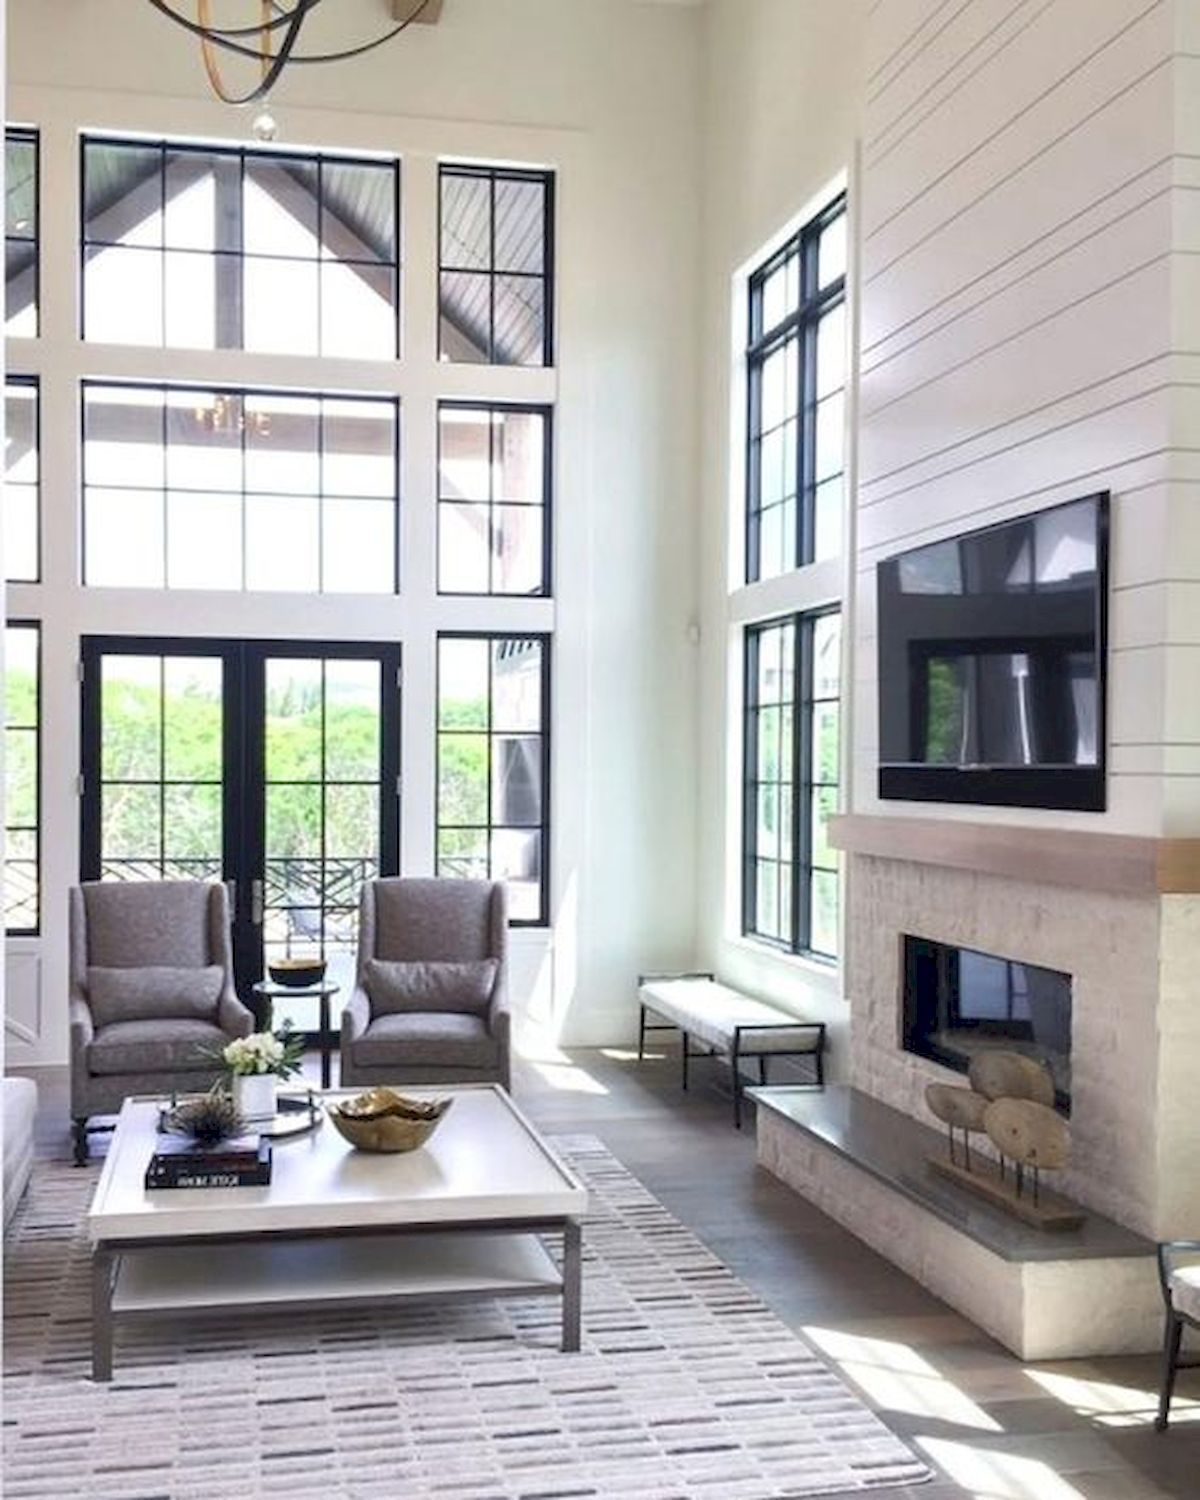 20 Stunning Farmhouse Windows Decor Ideas Cadence News Modern Farmhouse Living Room Decor Farm House Living Room Modern Farmhouse Living Room